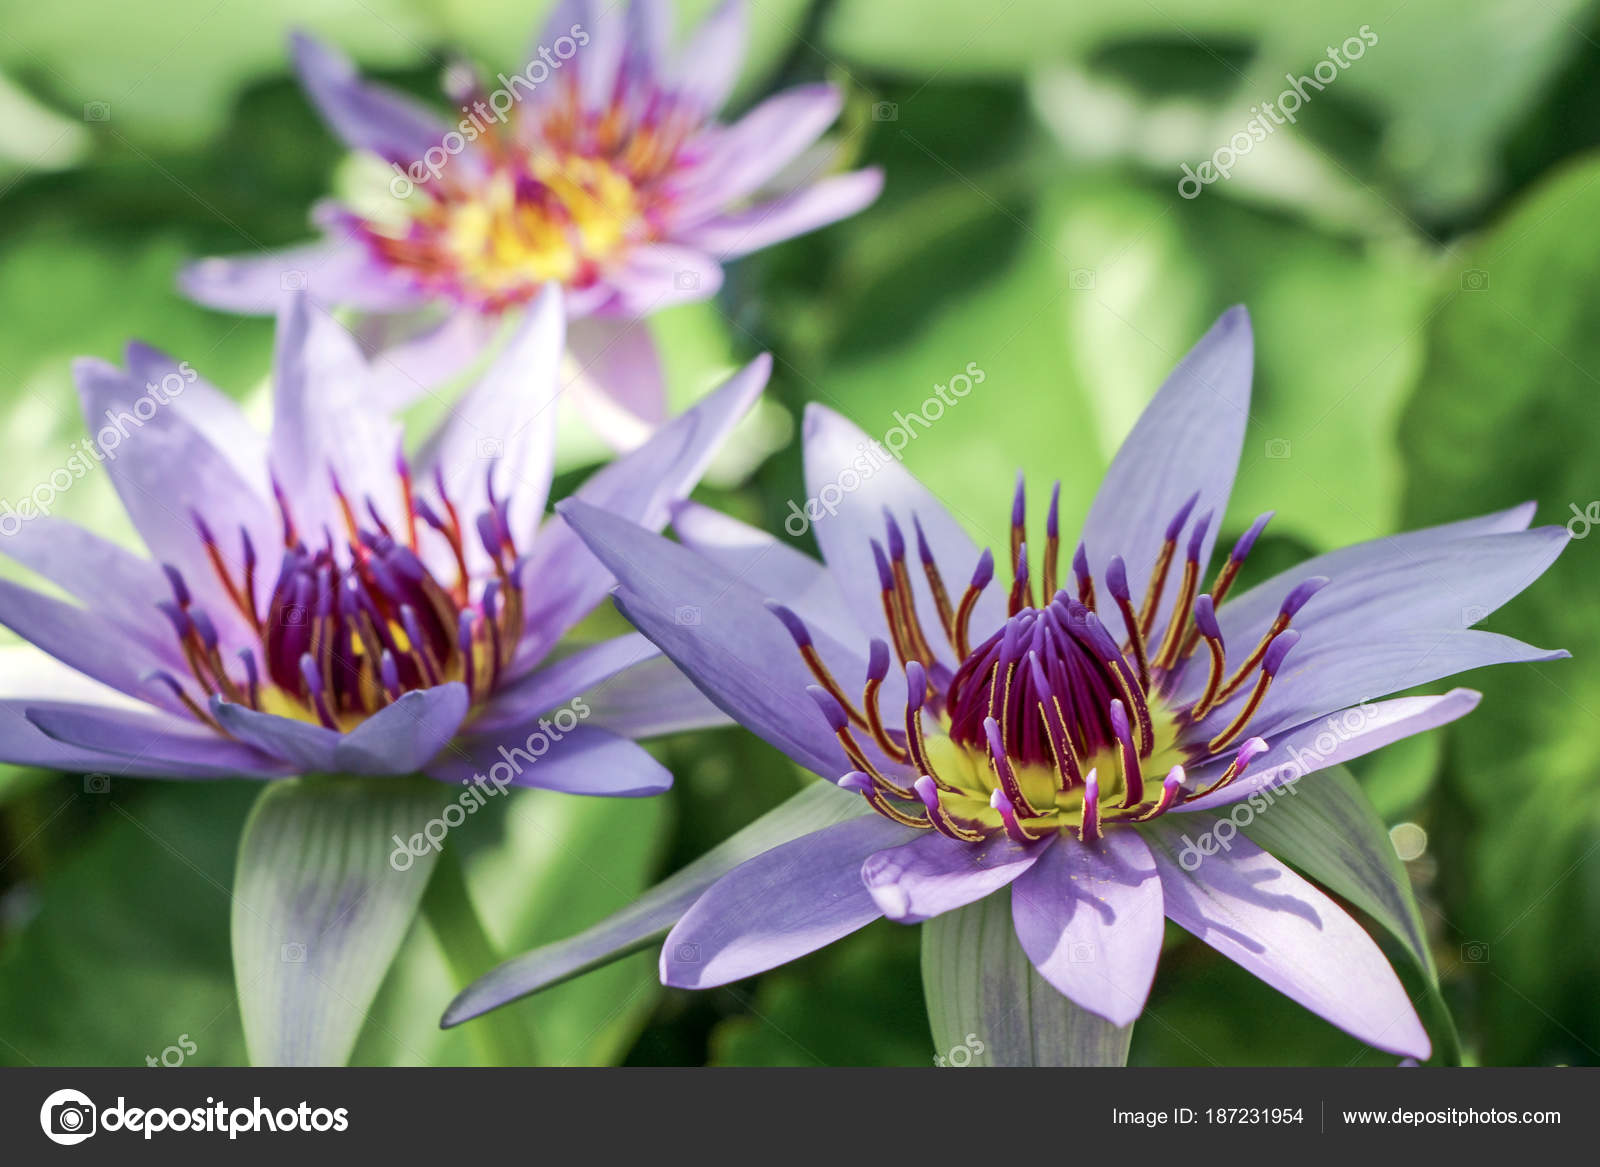 Water lily flower green leaves stock photo c728hotmail water lily flower with green leaves photo by c728hotmail izmirmasajfo